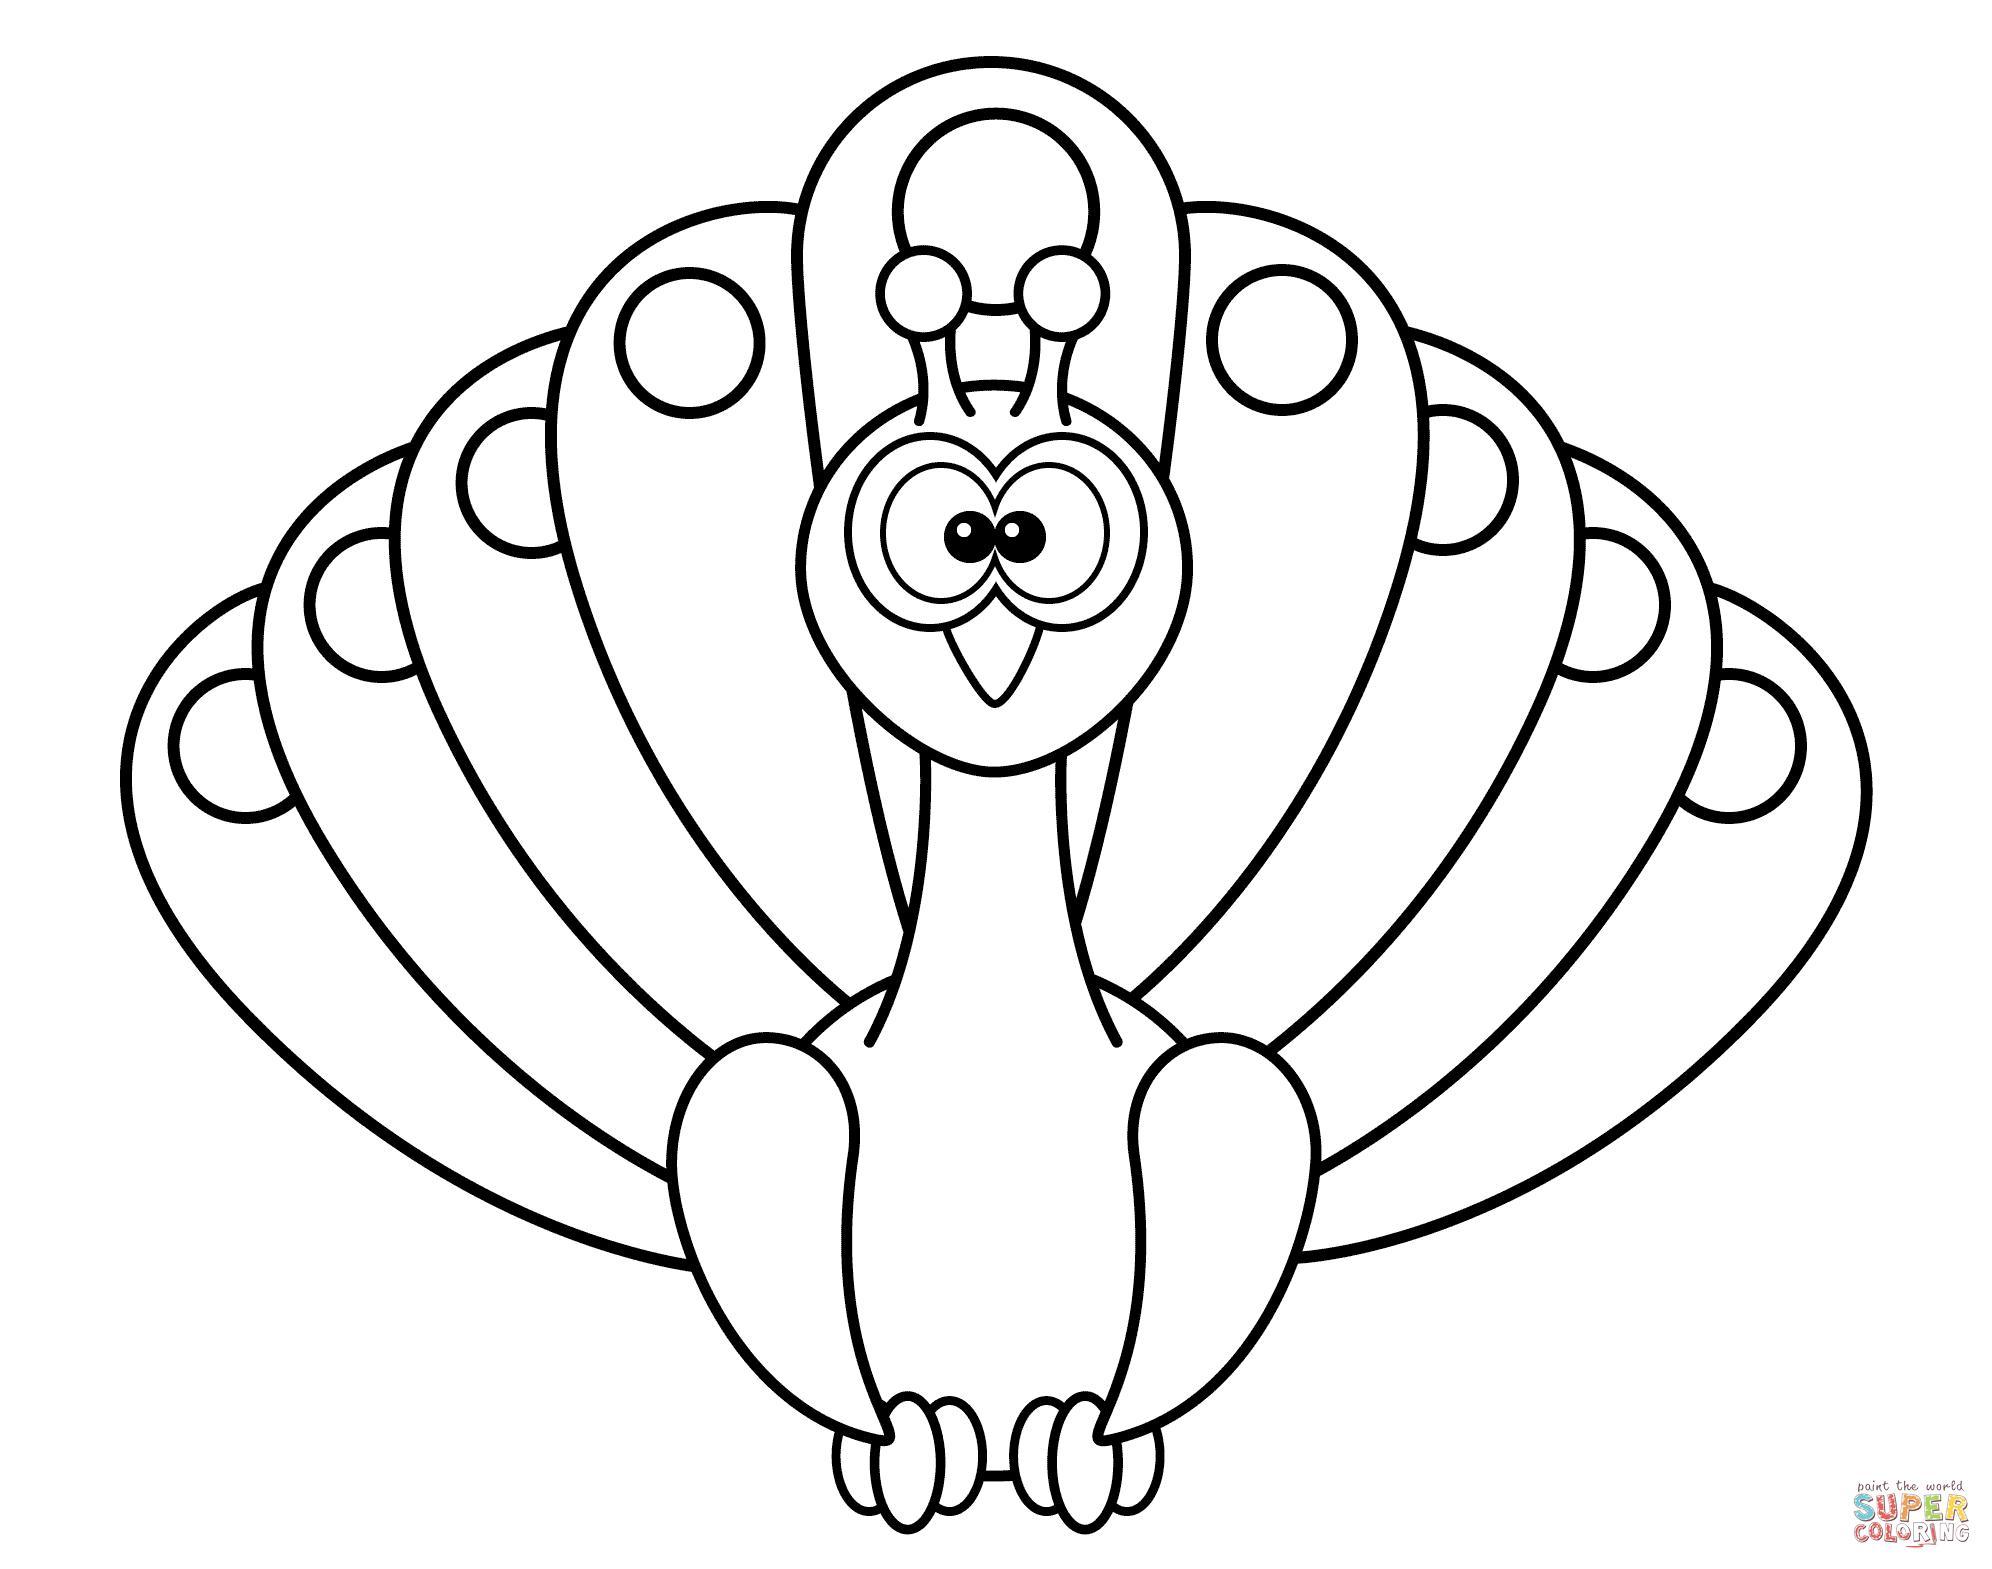 peacock pictures to color simple drawing of green peacock coloring page kids play to color pictures peacock